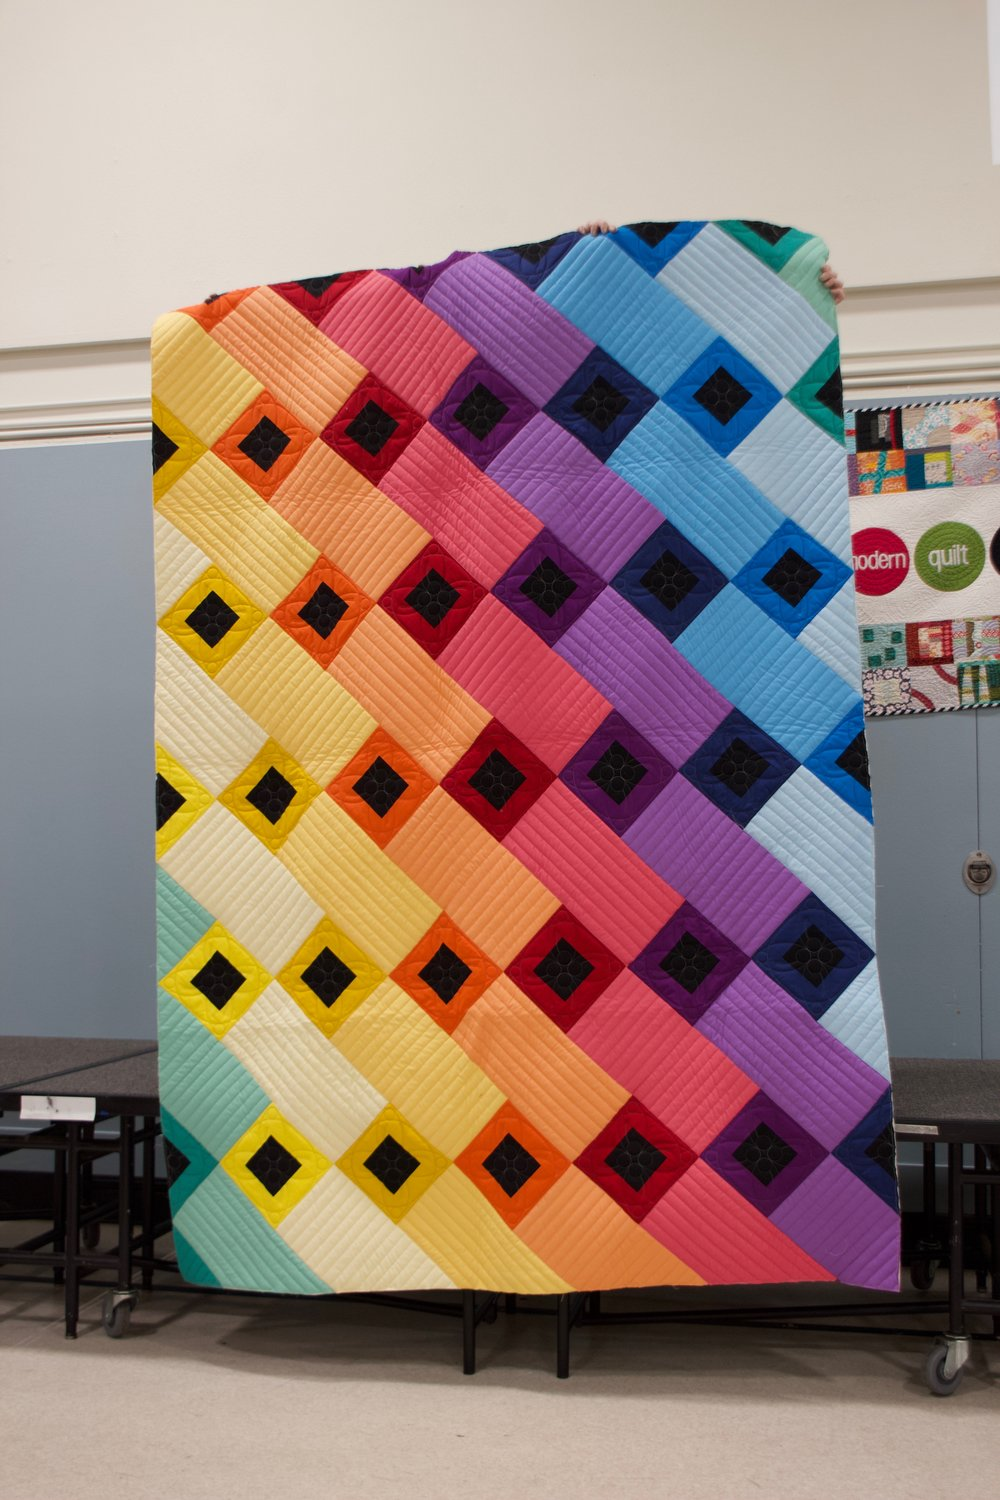 Quilt by Michél